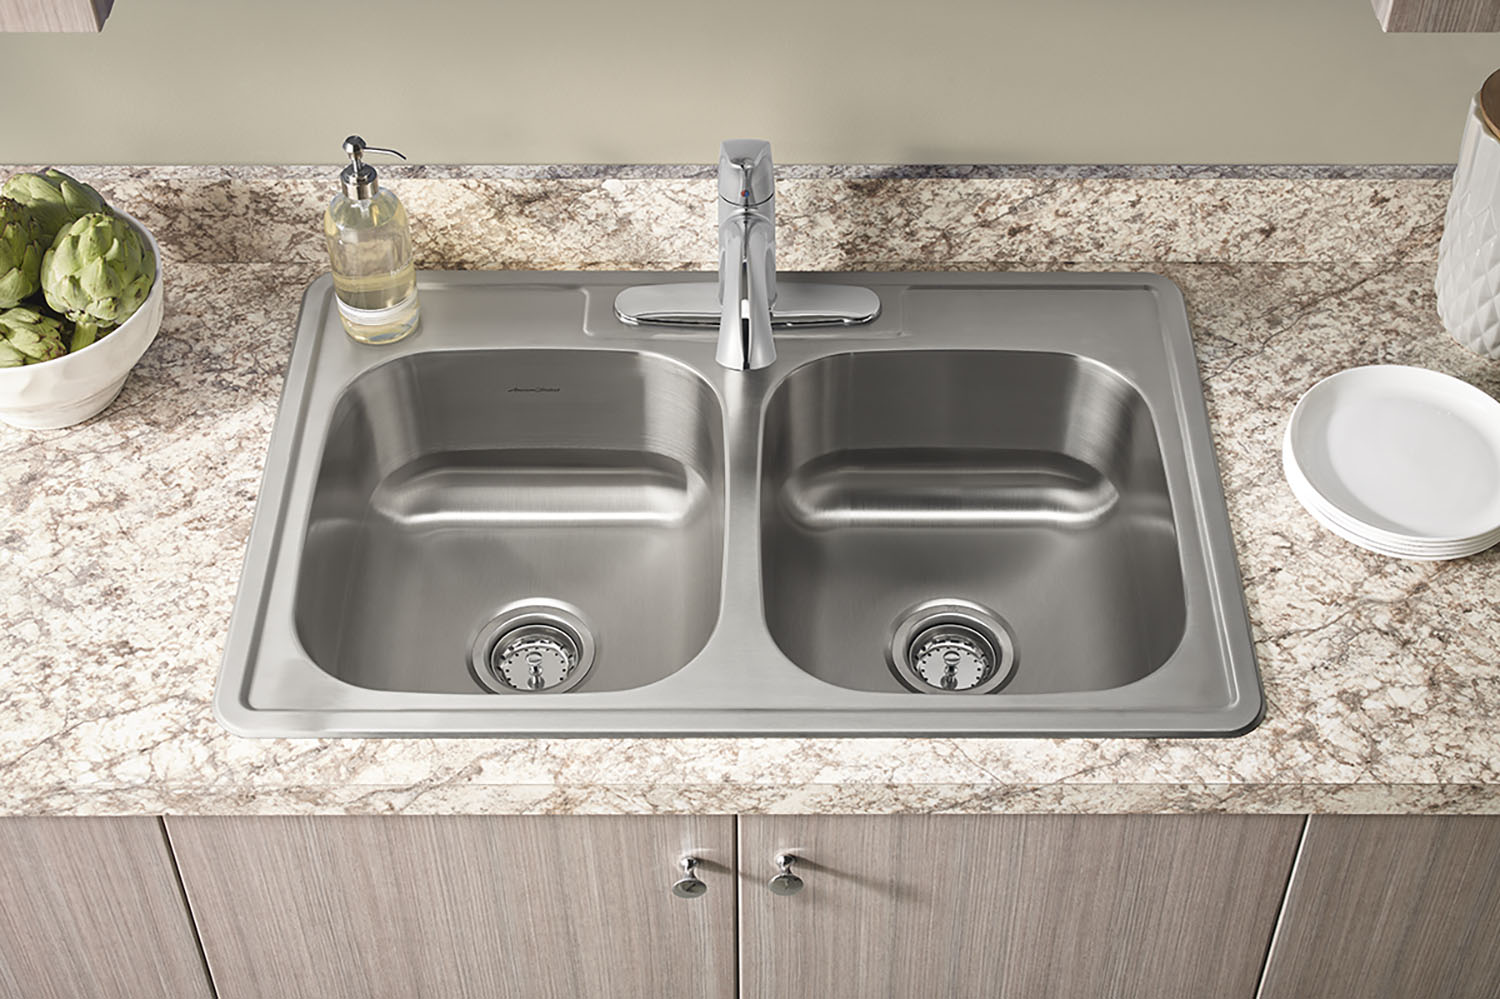 Four stainless steel sink assortments | For Residential Pros